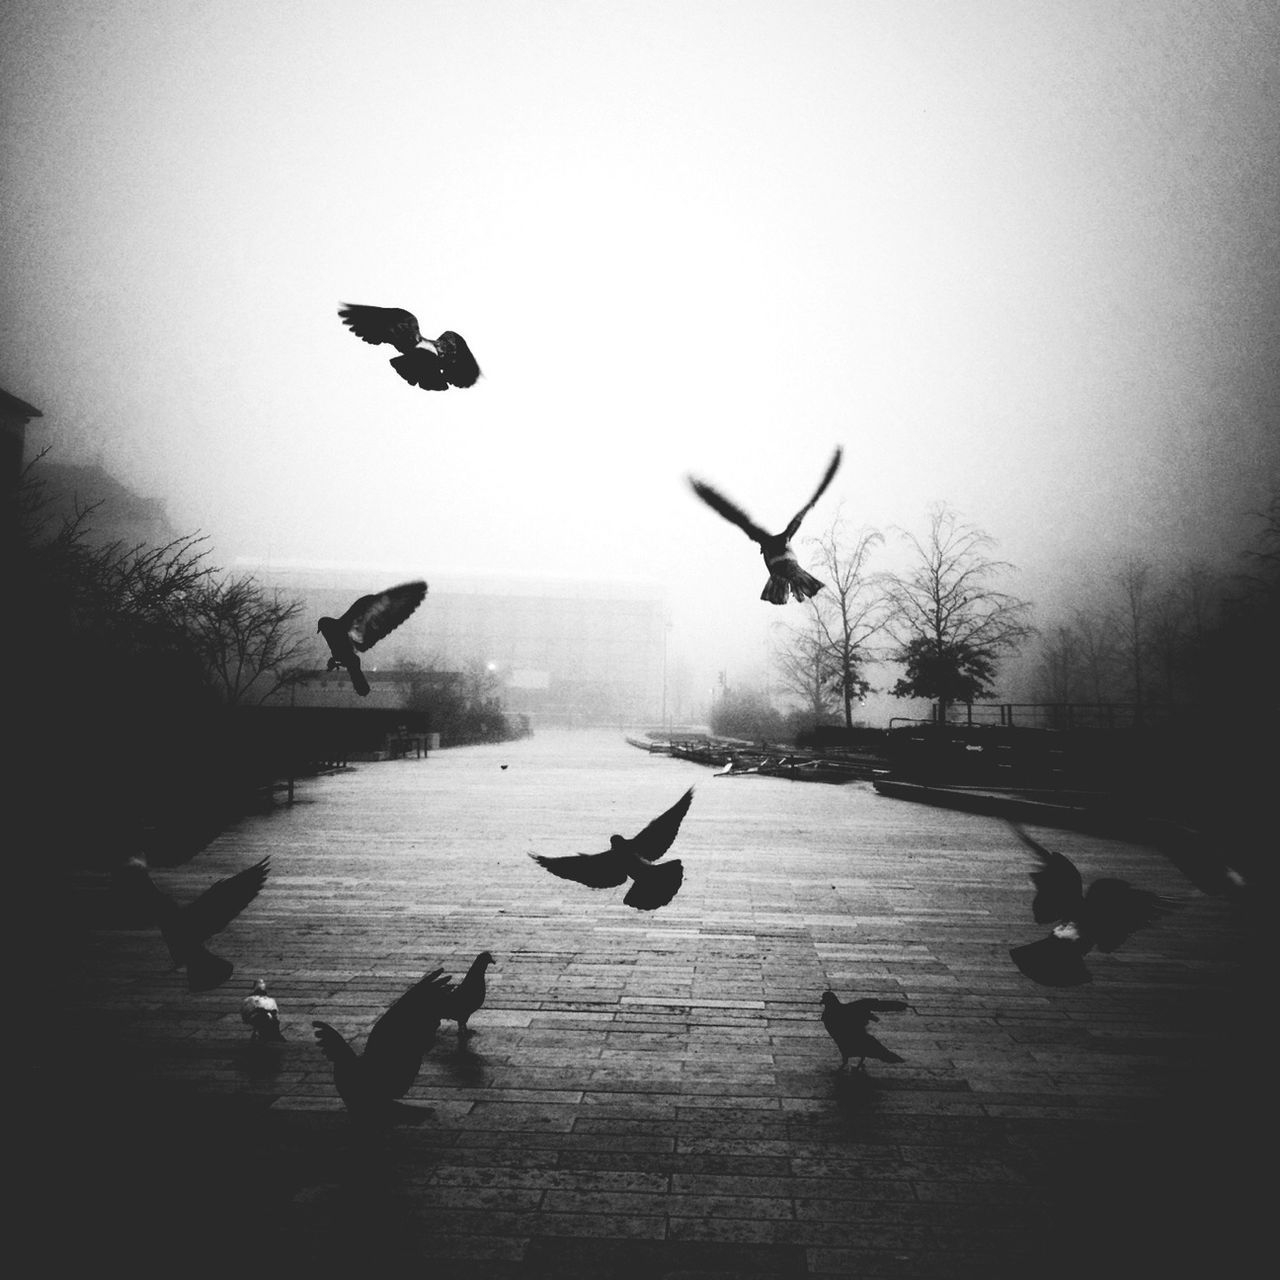 Birds in foggy park